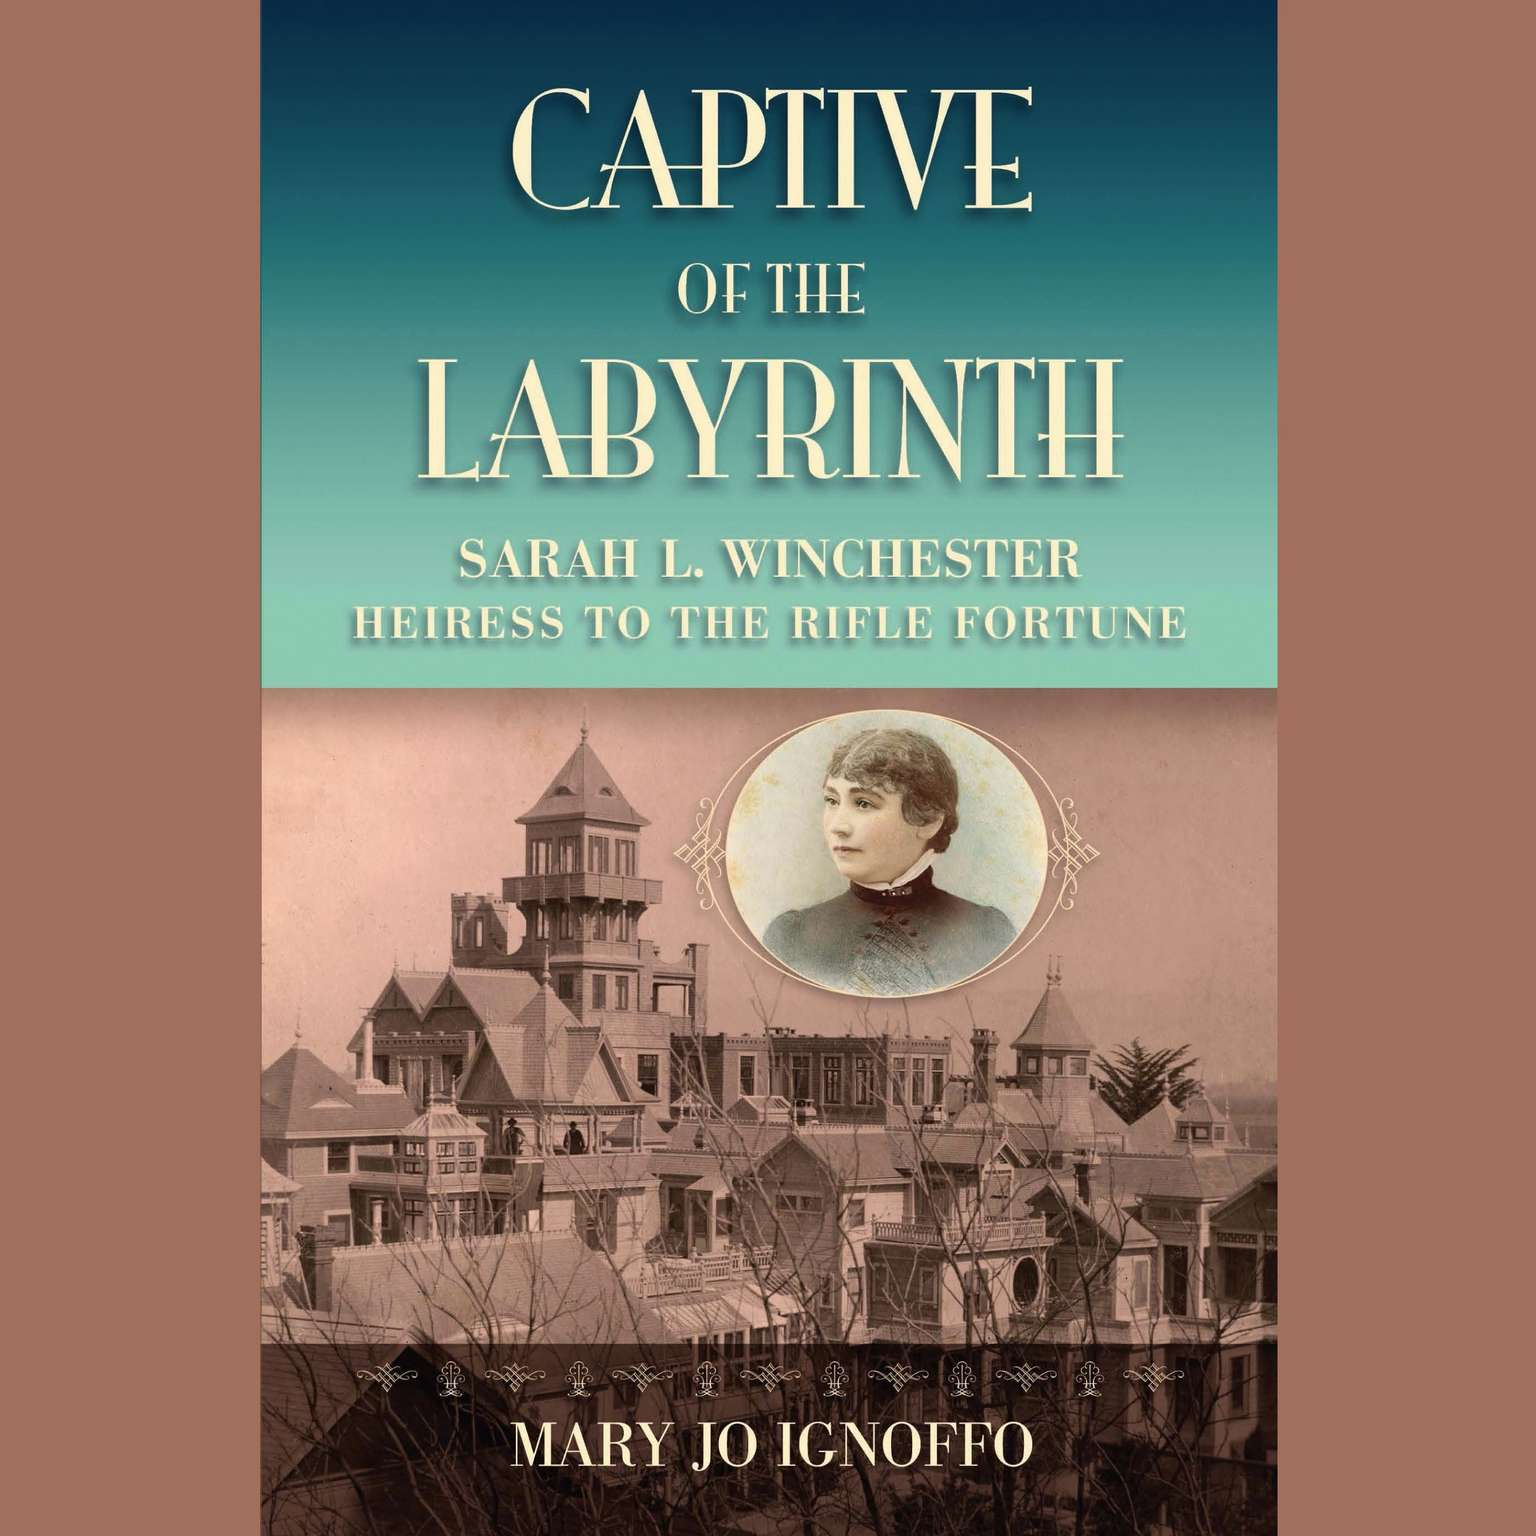 Printable Captive of the Labyrinth: Sarah L. Winchester, Heiress to the Rifle Fortune Audiobook Cover Art